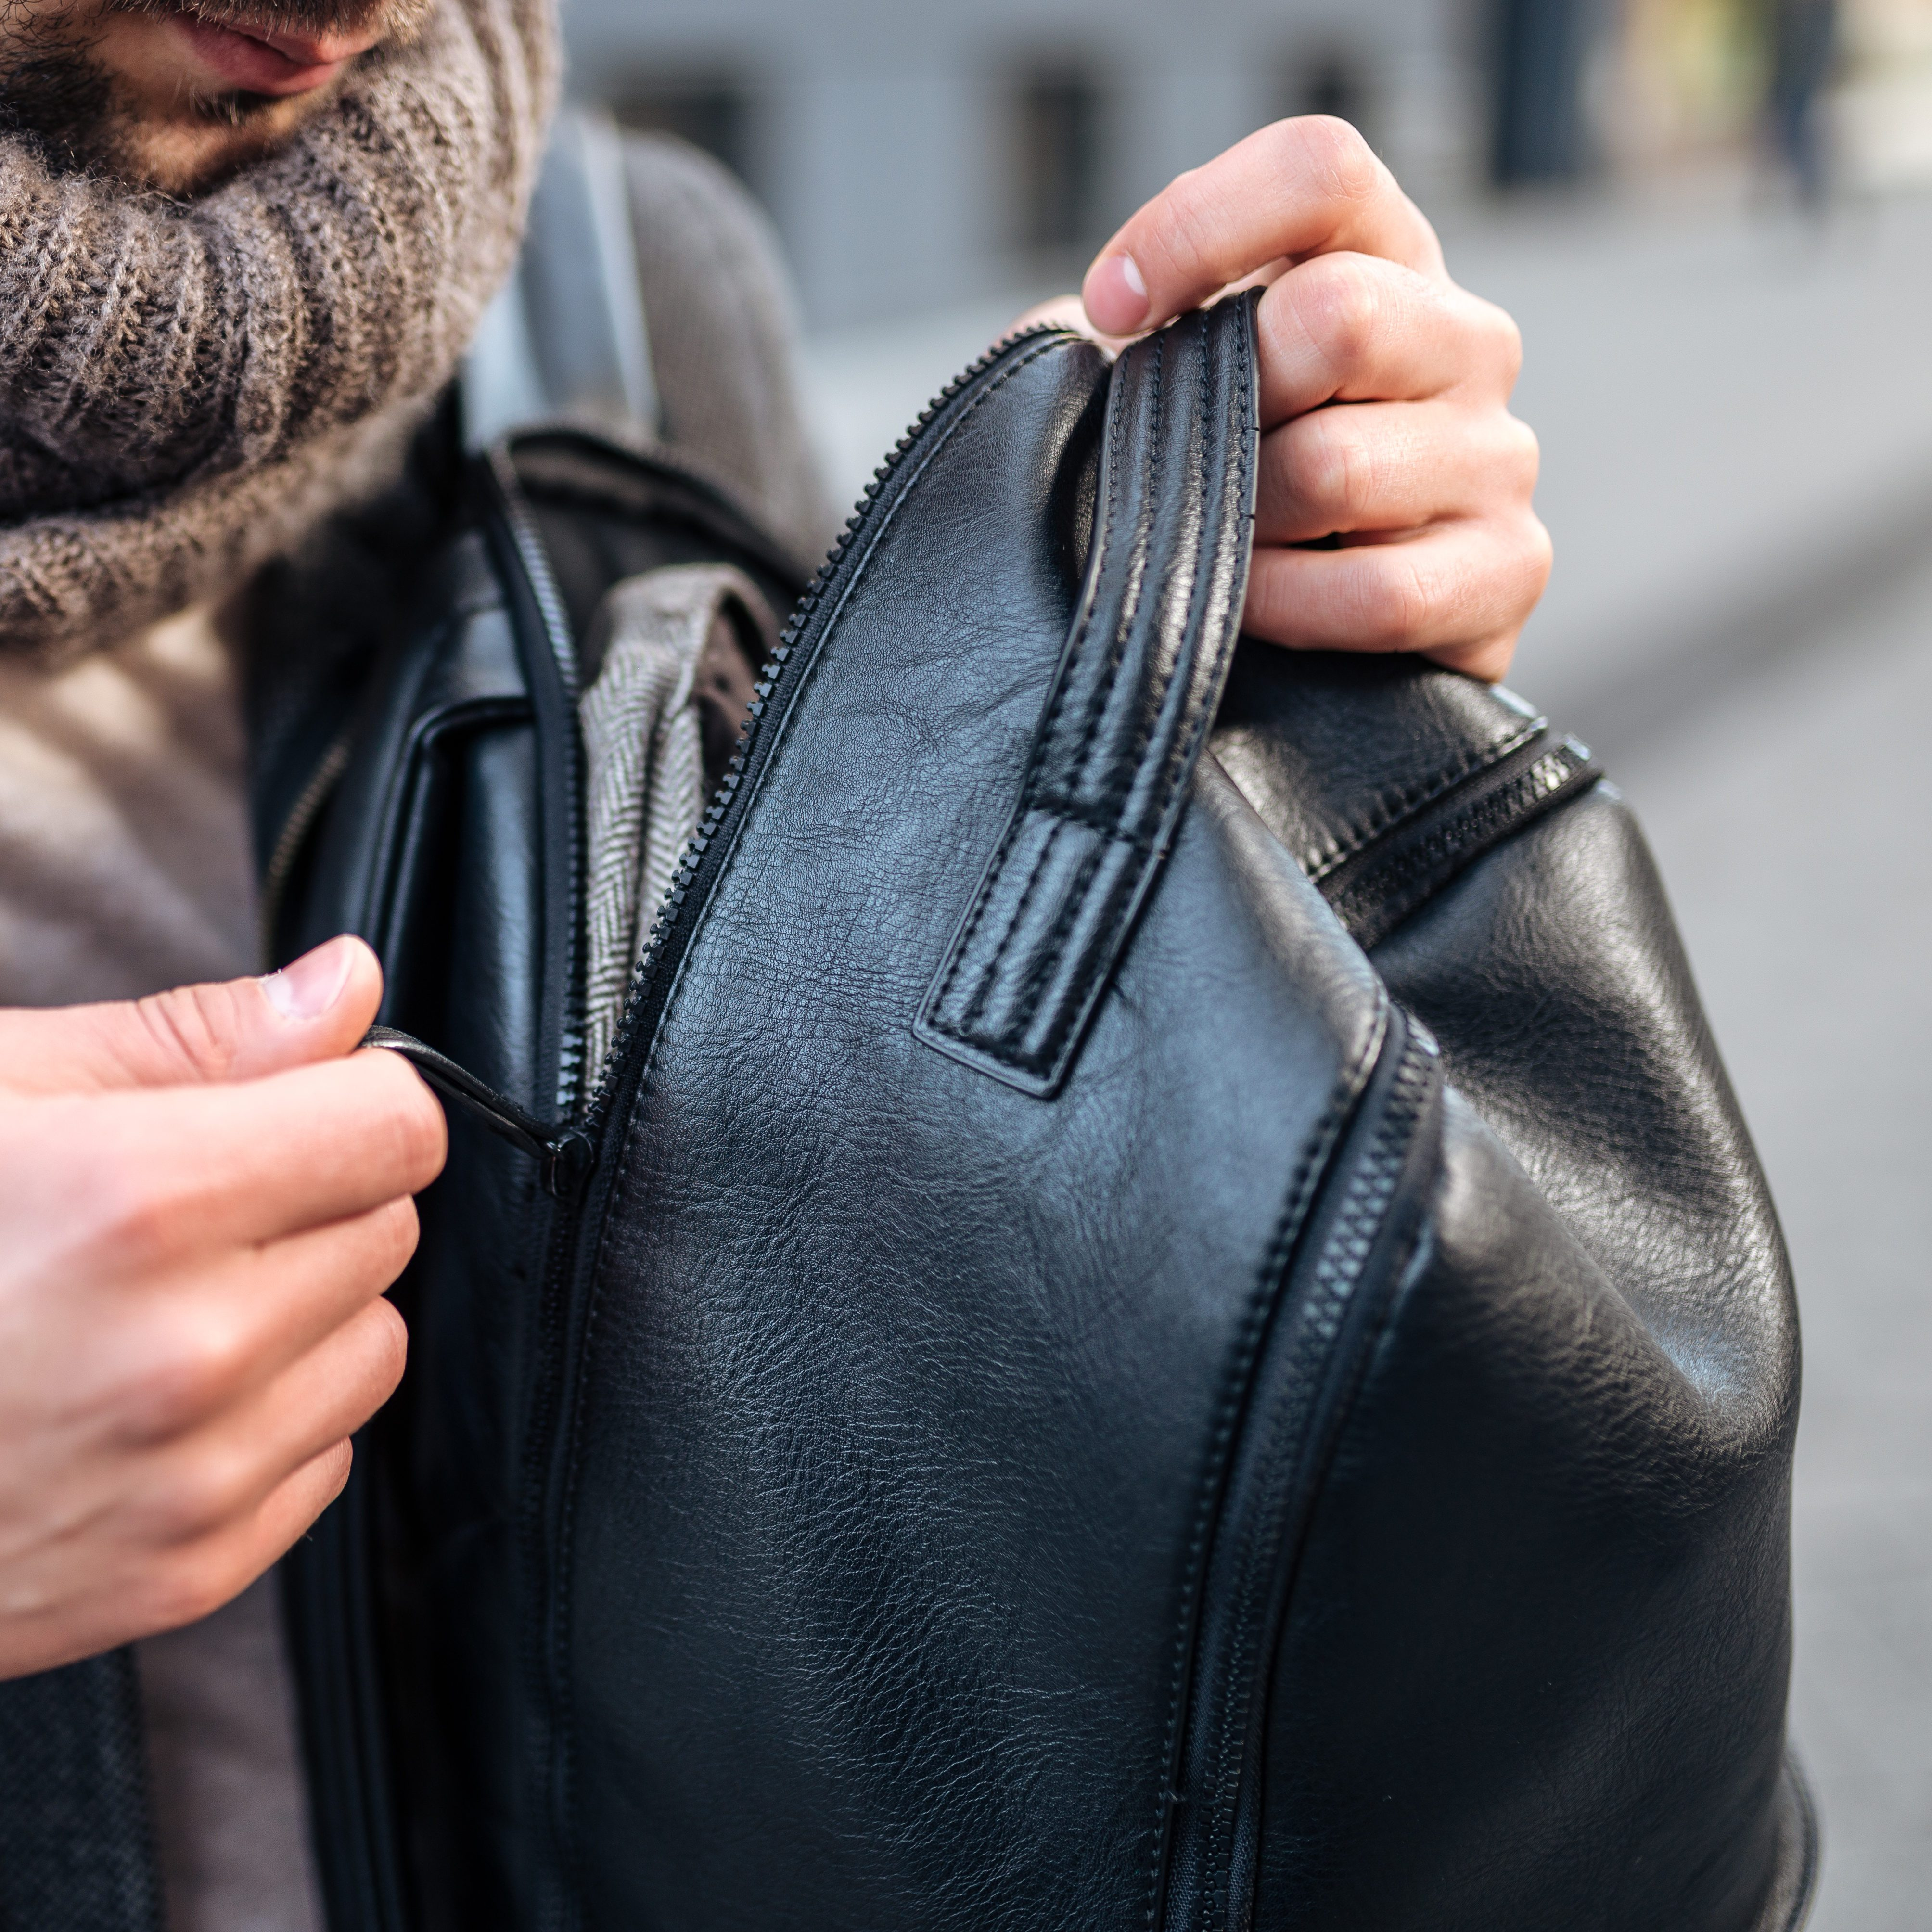 Young man opening his leather backpack.